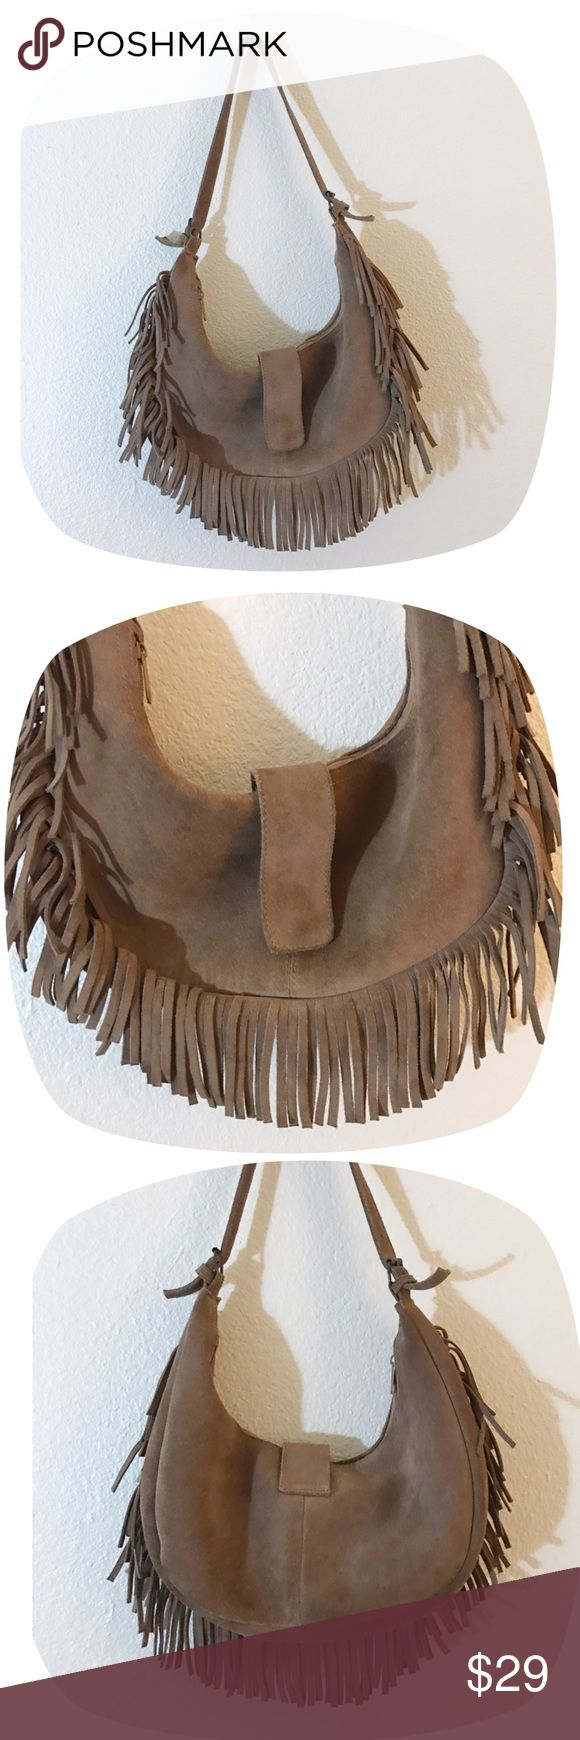 "•VTG Suede Leather Fringe Purse• •MEASUREMENTS• Width- 13.5"" Height- approx 6.5""  •DETAILS• •Soft really suede leather• has hobo style slouch to it• zip closure• black lining• has some discoloration due to age (most is visible in pictures )• No brand•  •NO TRADES•❌NOT FREE PEOPLE❌NOT MODELING•  #70s #60s #boho #hippy #festival #leather #cowhide #tan #slouchy #hobo #fringe Bags Hobos"